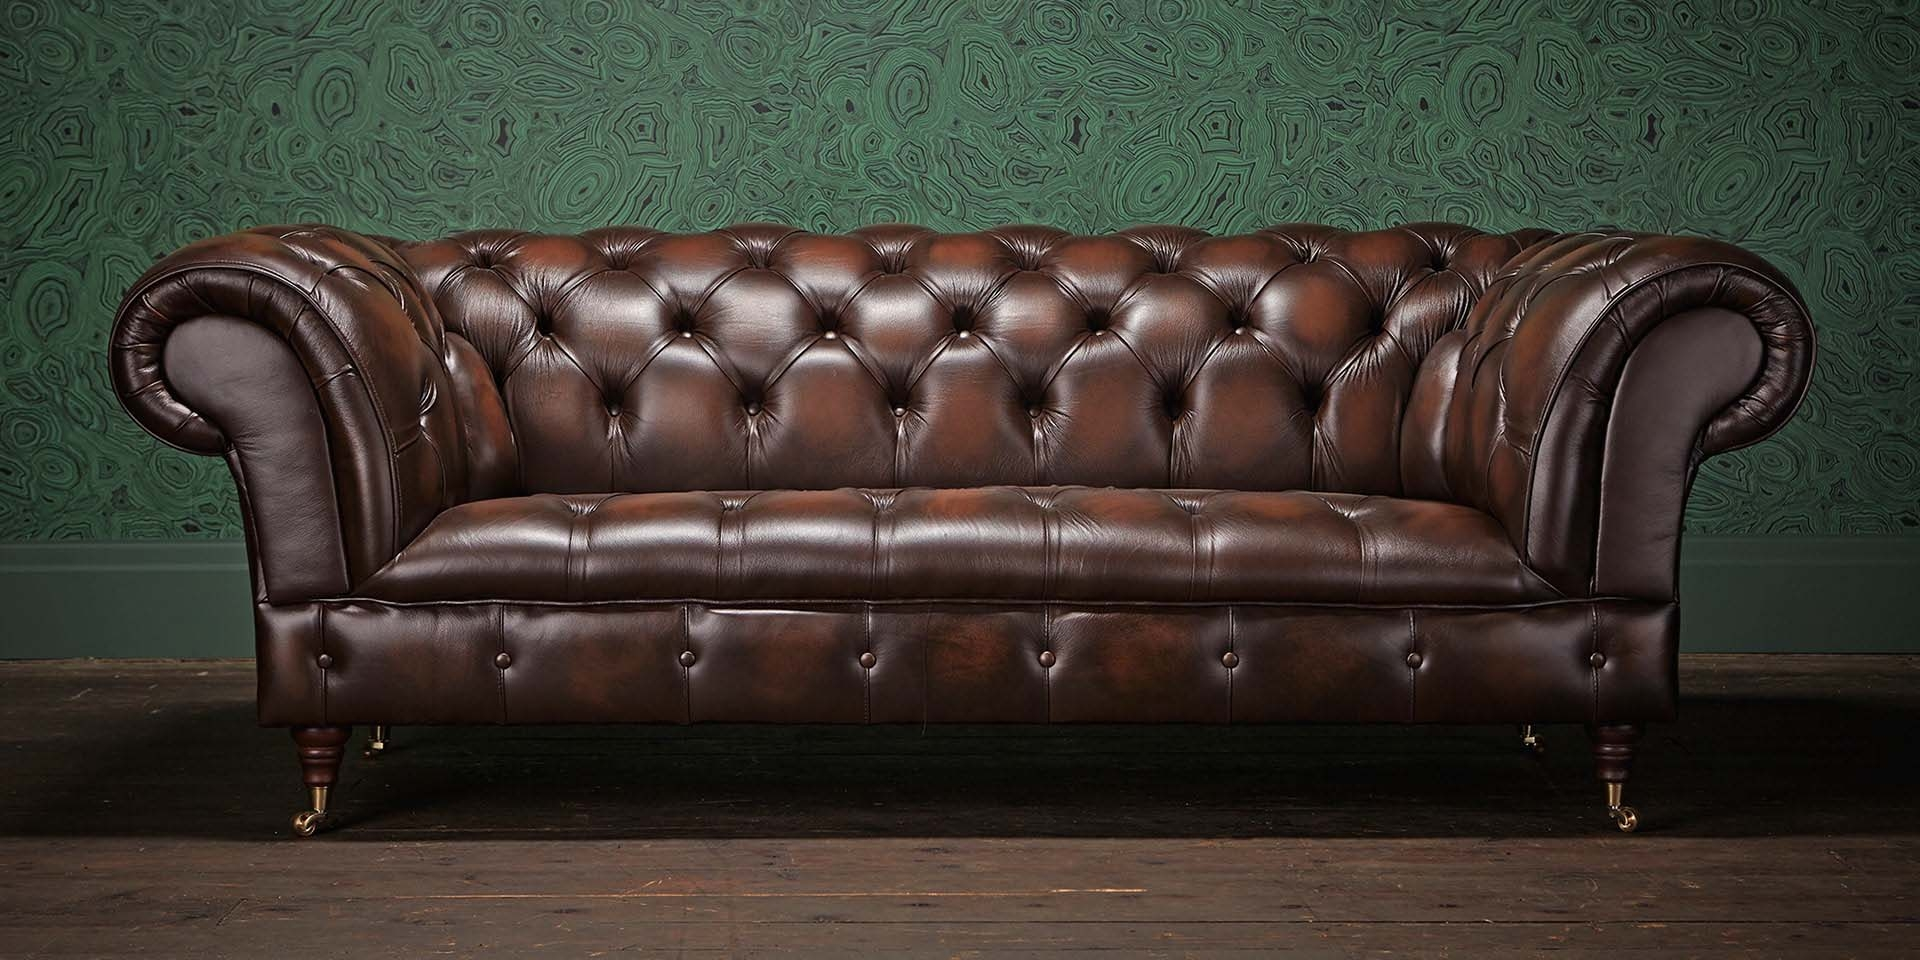 Chesterfields Of England The Original Chesterfield Company In Leather Chesterfield Sofas (Image 9 of 15)